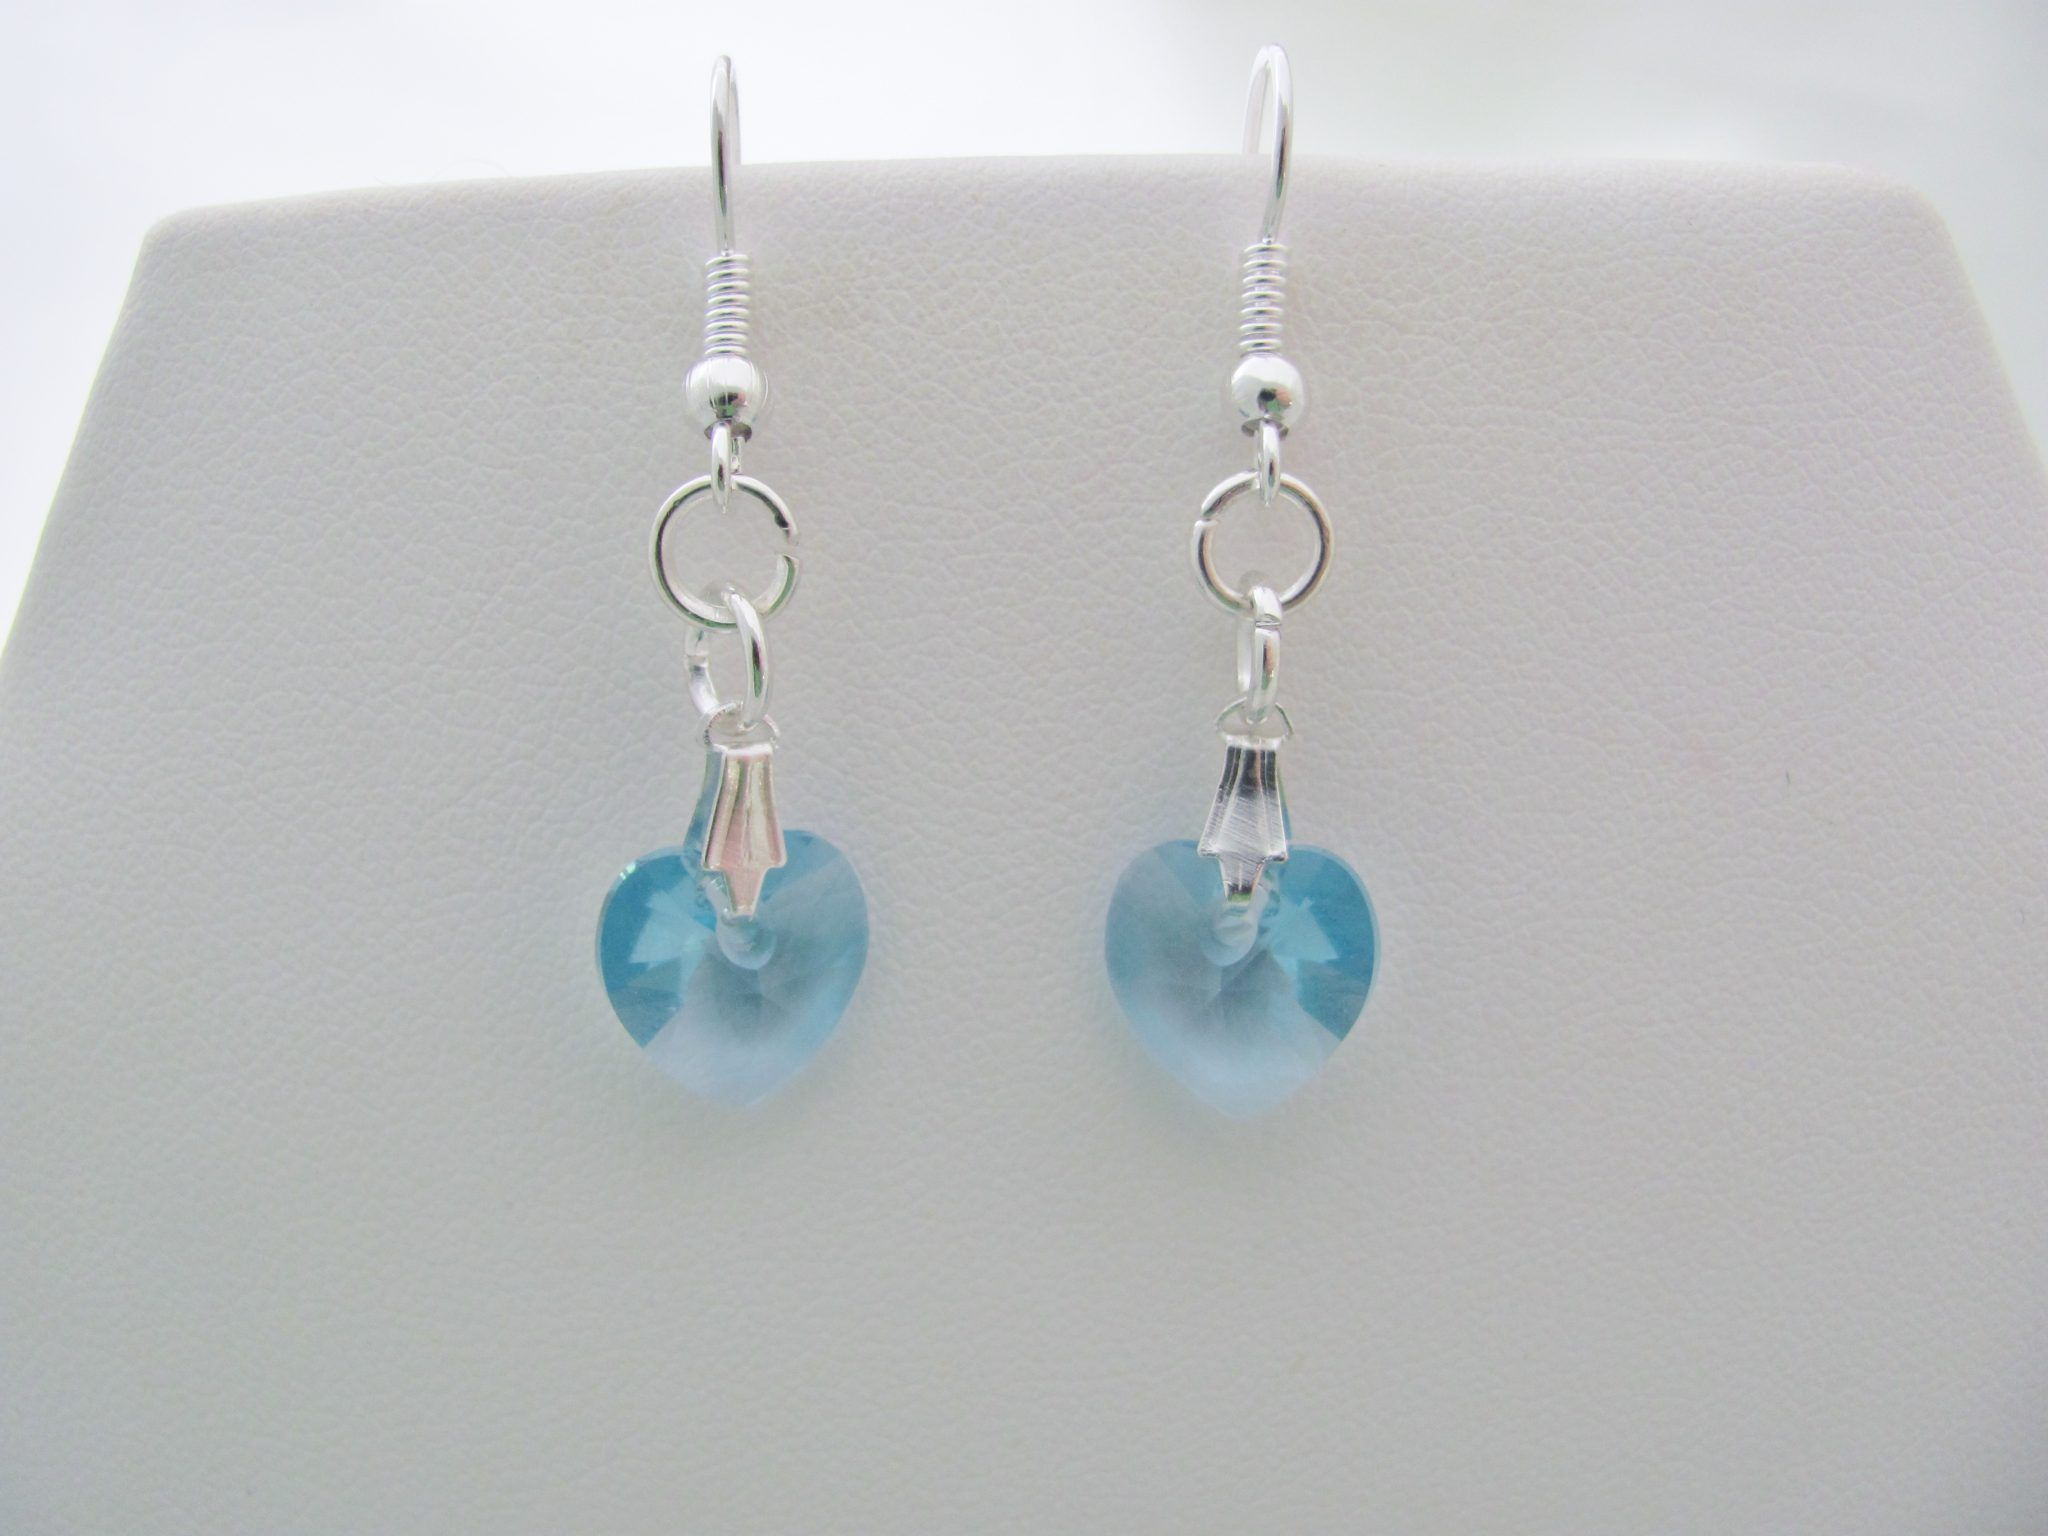 Swarovski Crystal Heart Bead Earrings in Aquamarine, delicate 10mm hearts hanging from silver plated earring wires.  Handmade with genuine Swarovski beads.